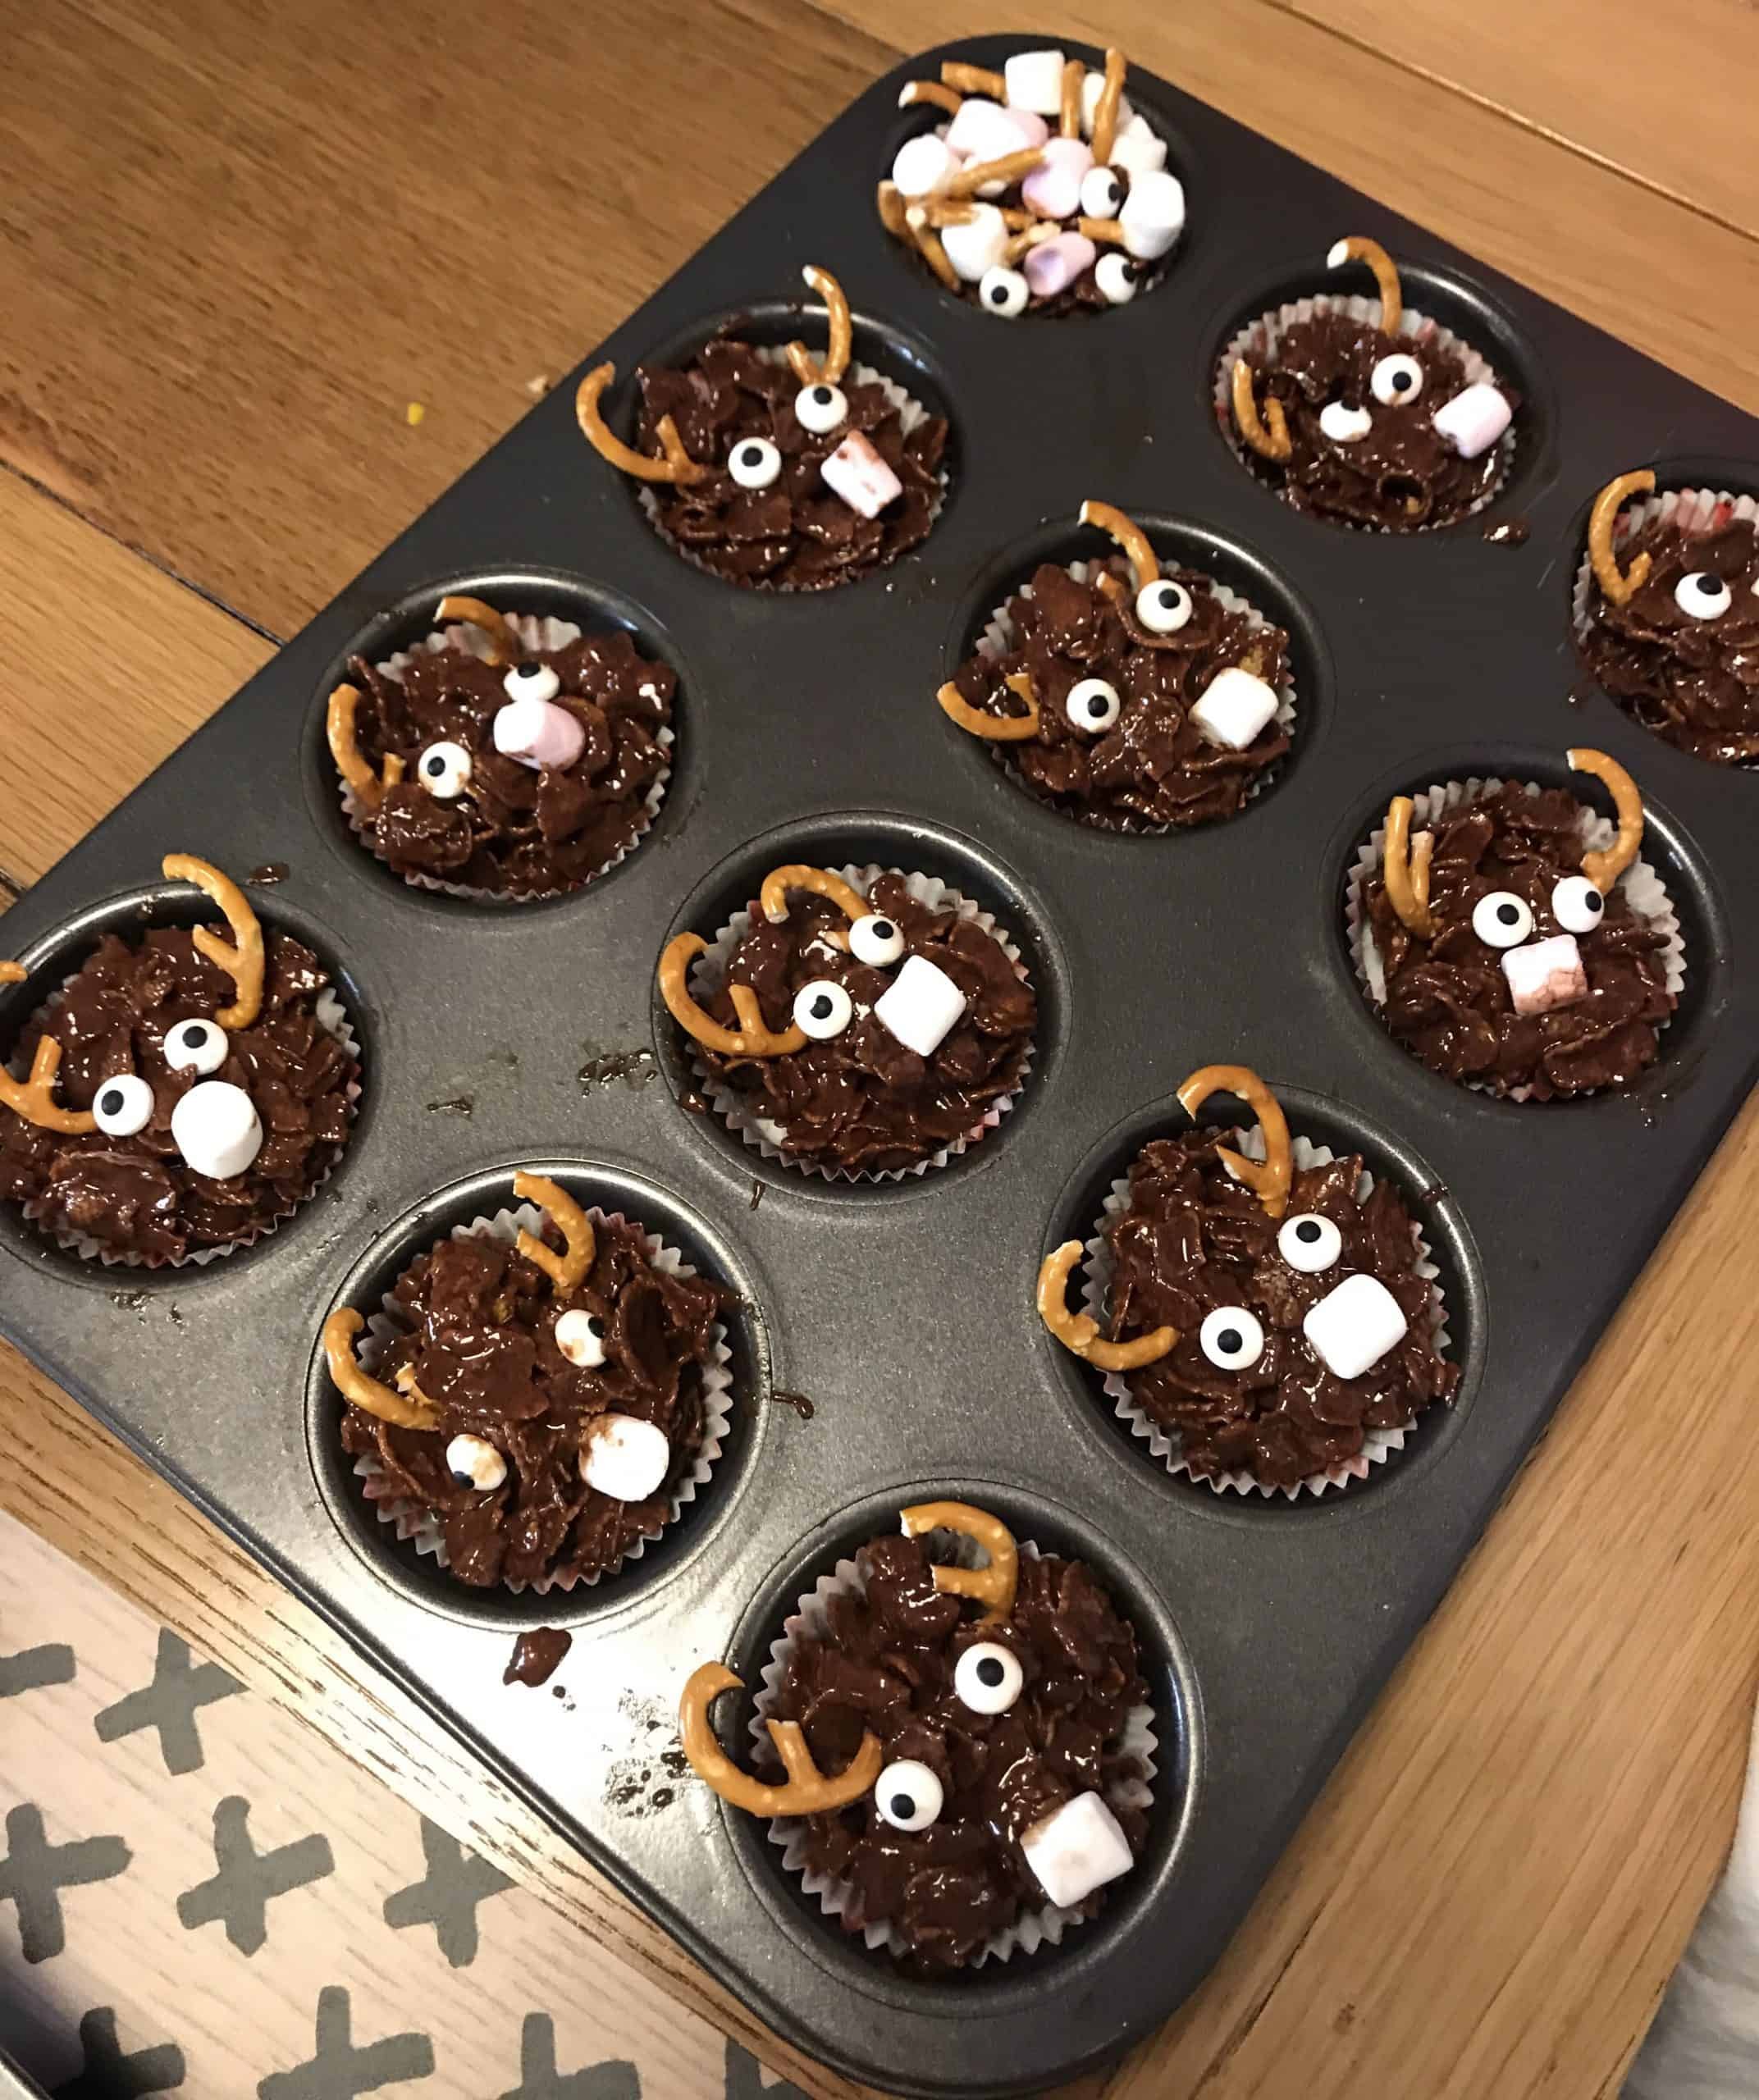 Our finished easy no-bake reindeer chocolate cornflake cakes